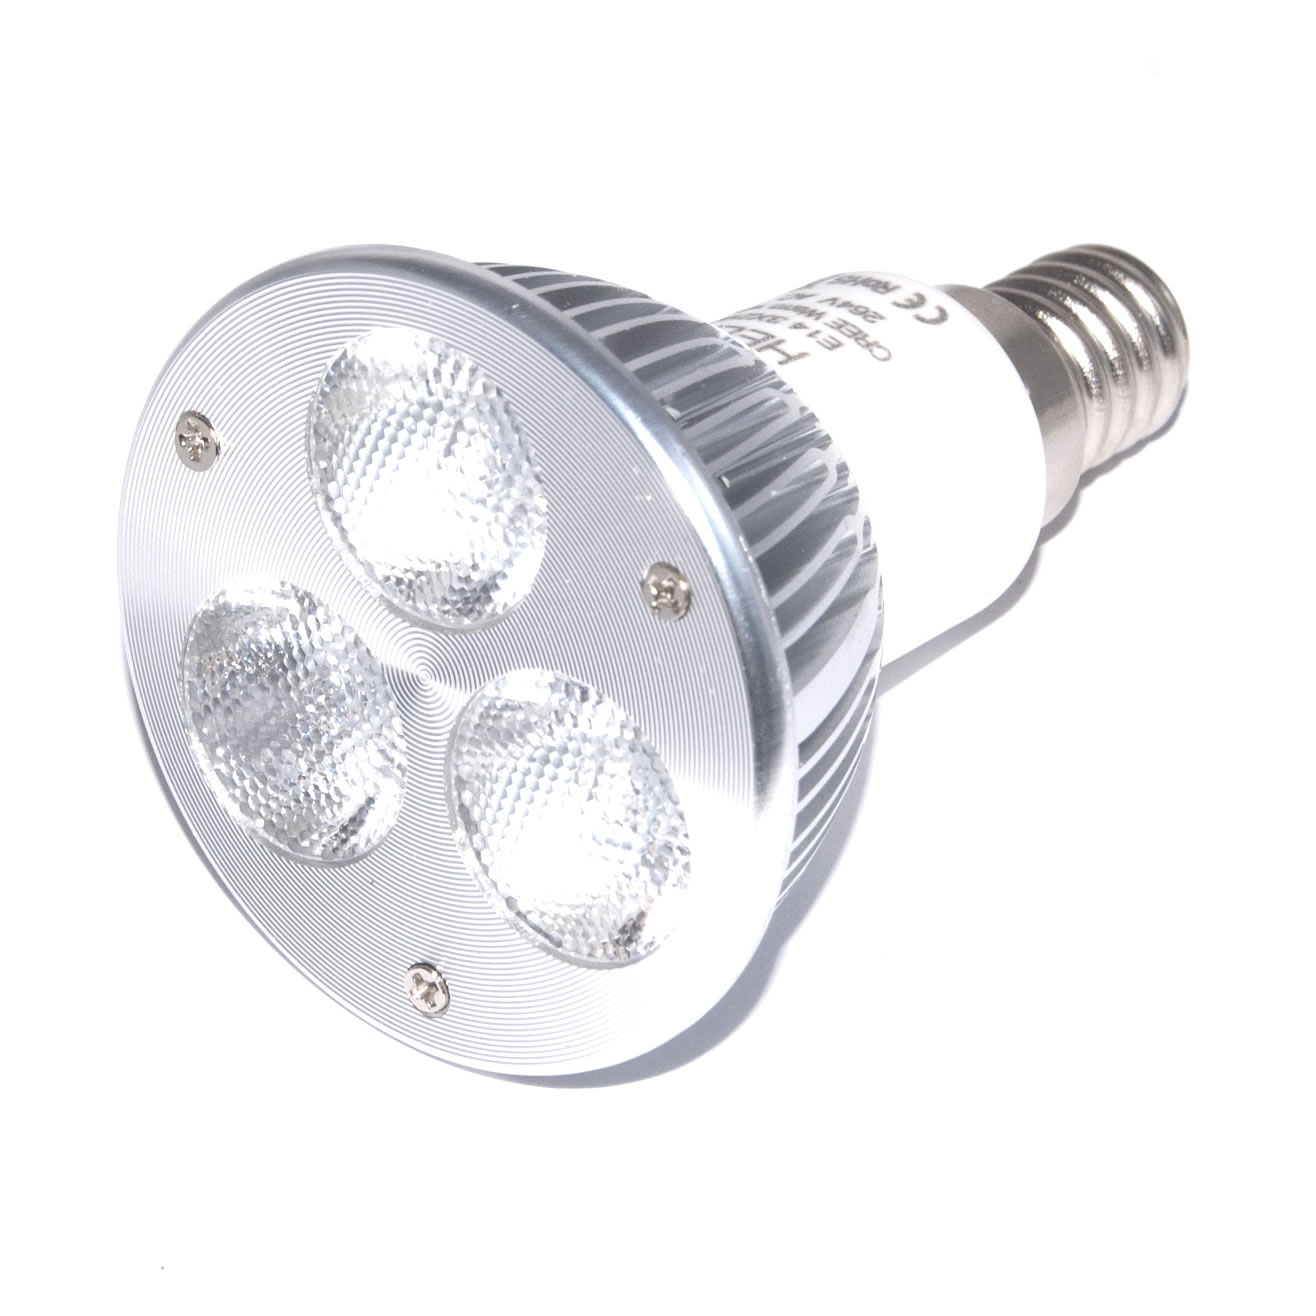 Lampen Led Spot Gu10 Power Led Lamp Cobverlichting Cob Spots 6 Watt 2800 K